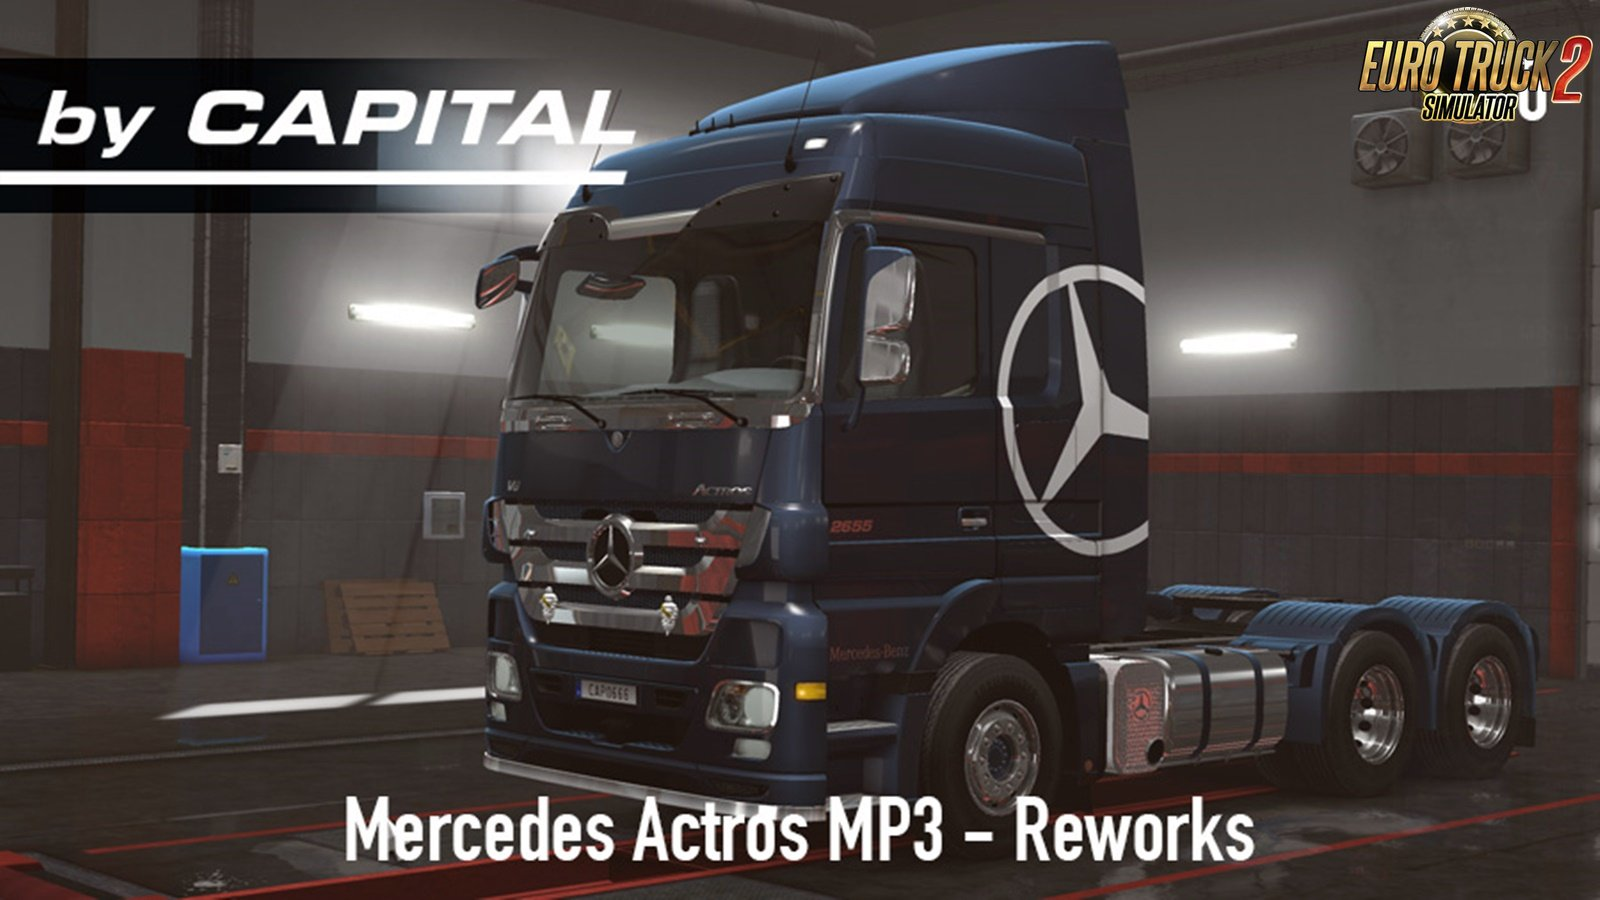 Mercedes Actros MP3 Reworks v3.0 ByCapital